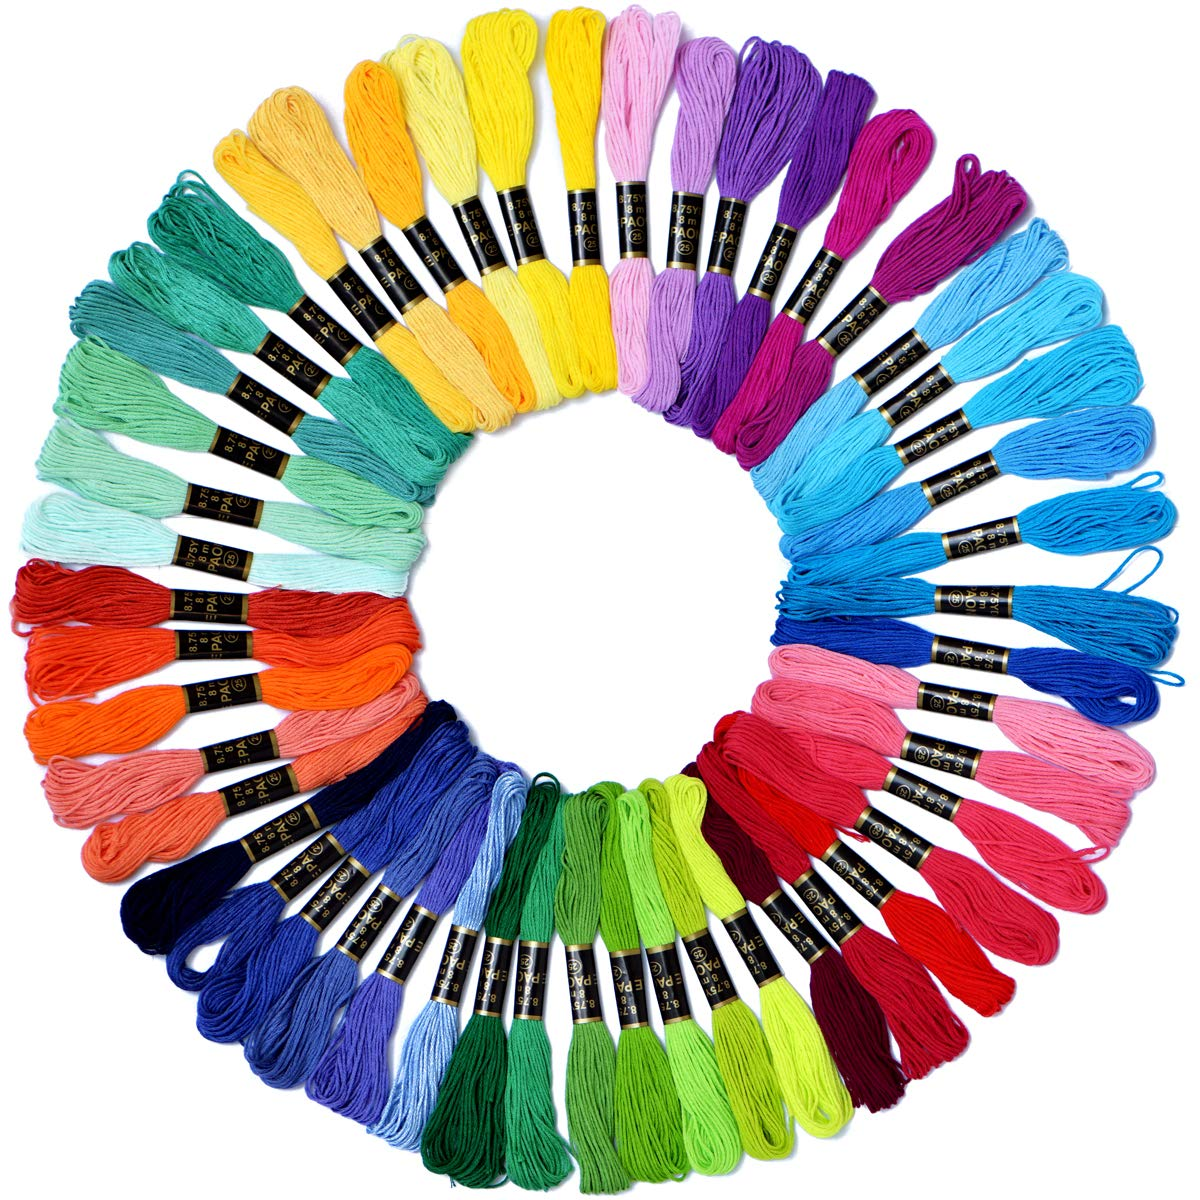 B/&S FEEL Embroidery Floss Premium Rainbow Color Cross Stitch Threads Friendship Bracelets Floss Crafts Floss 100 Skeins Per Pack